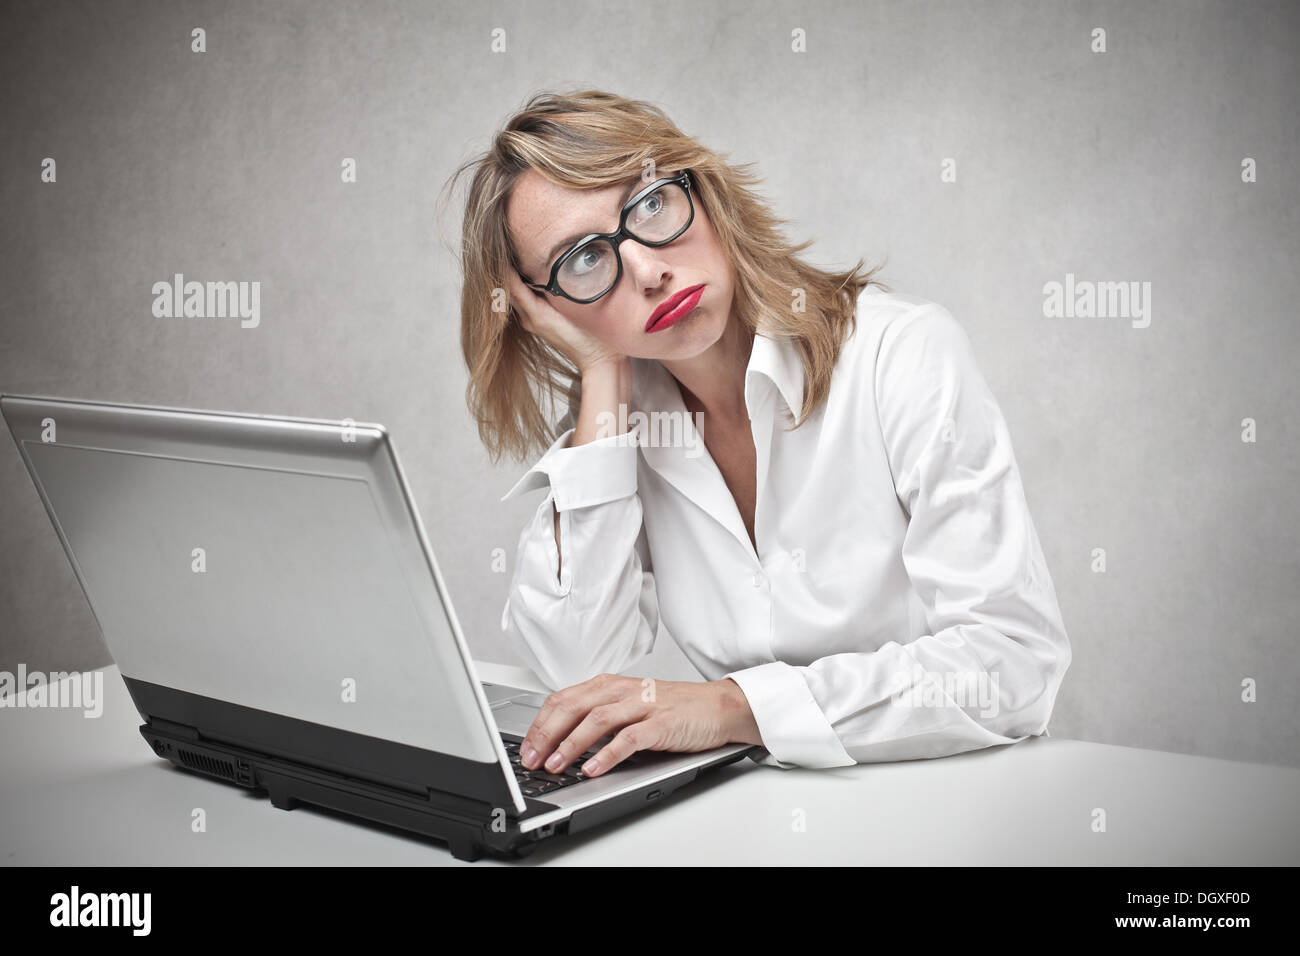 Bored blonde woman with glasses using a laptop Stock Photo